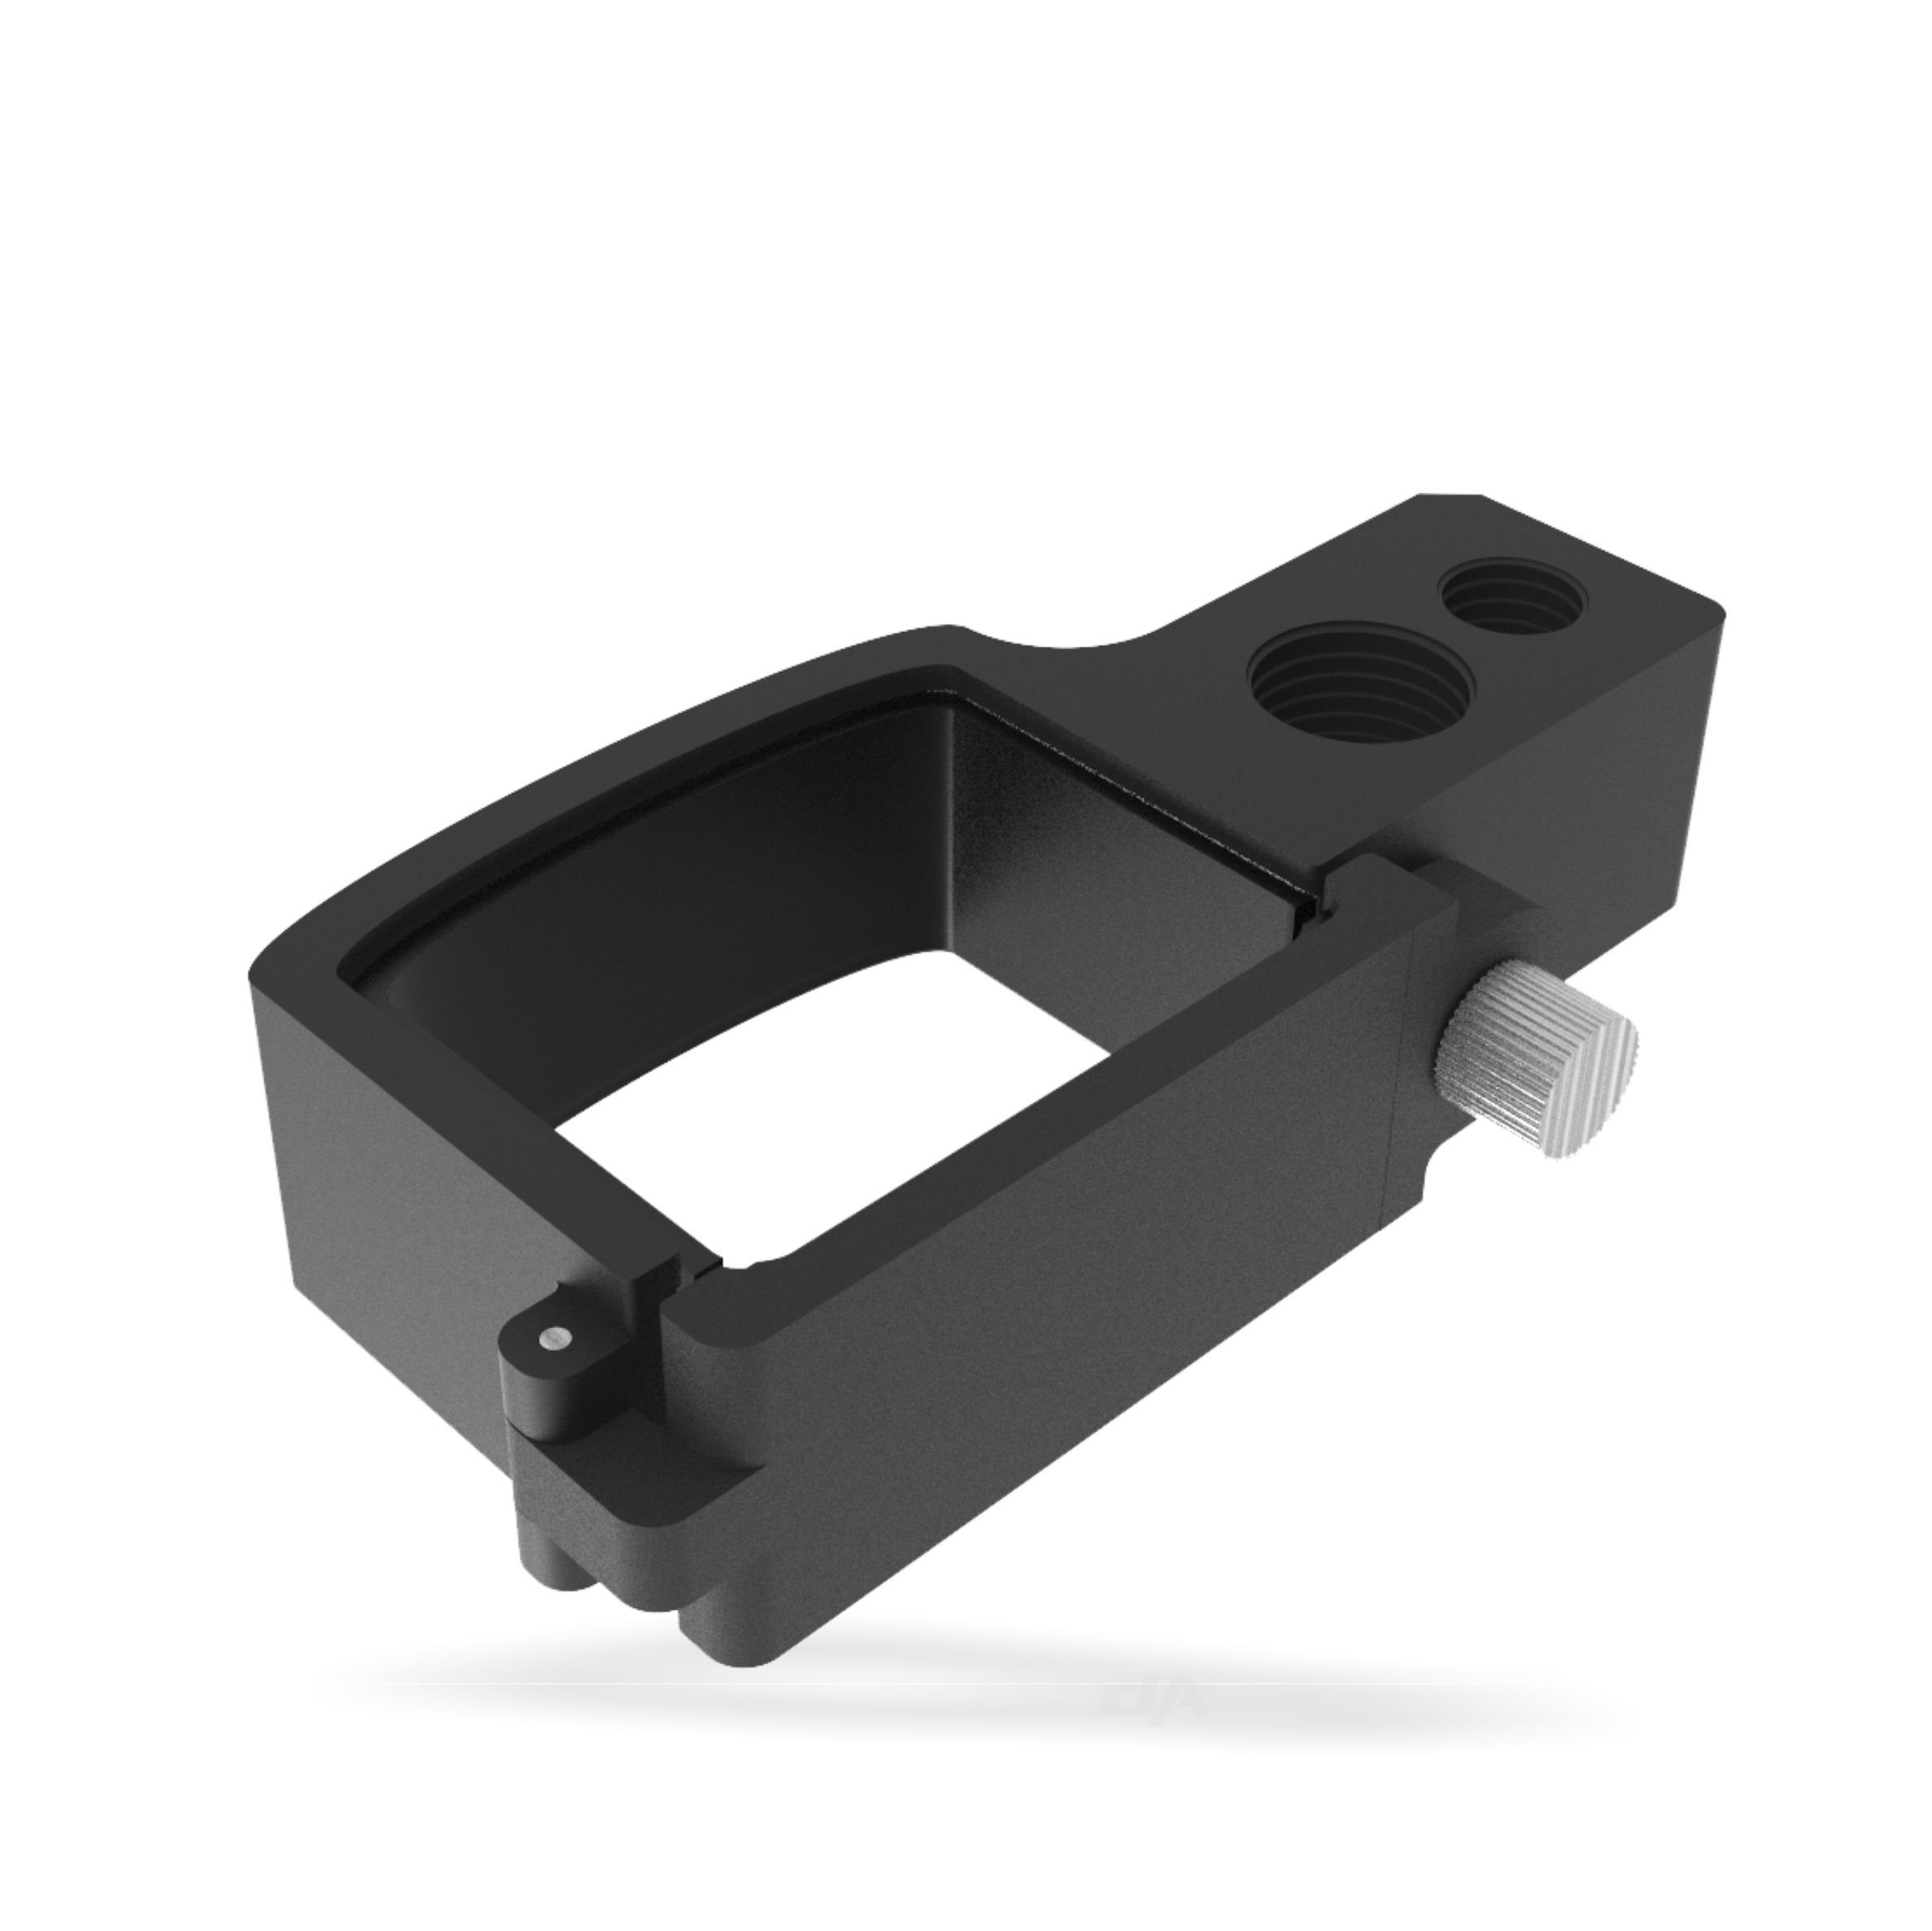 Quick-release DJI Osmo Pocket Gimbal Camera CNC Extension Module Connection DJI OSMO POCKET Expansion Adapter block Accessories 5